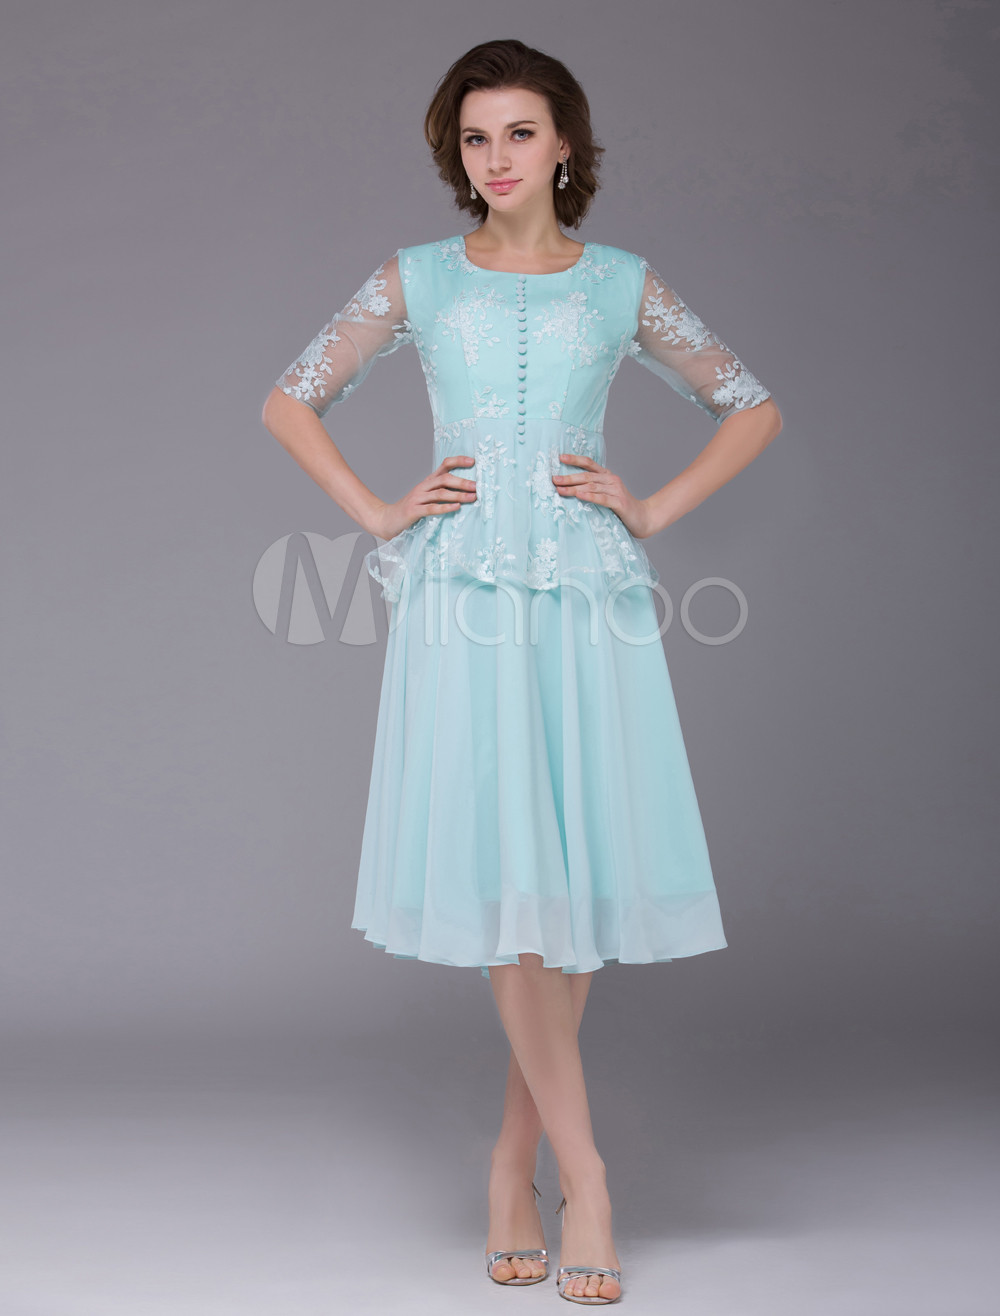 Chiffon Prom Dress Mint Green Round Neck Party Dress Lace Half Sleeve Front Button Cocktail Dress (Wedding Cocktail Dresses) photo